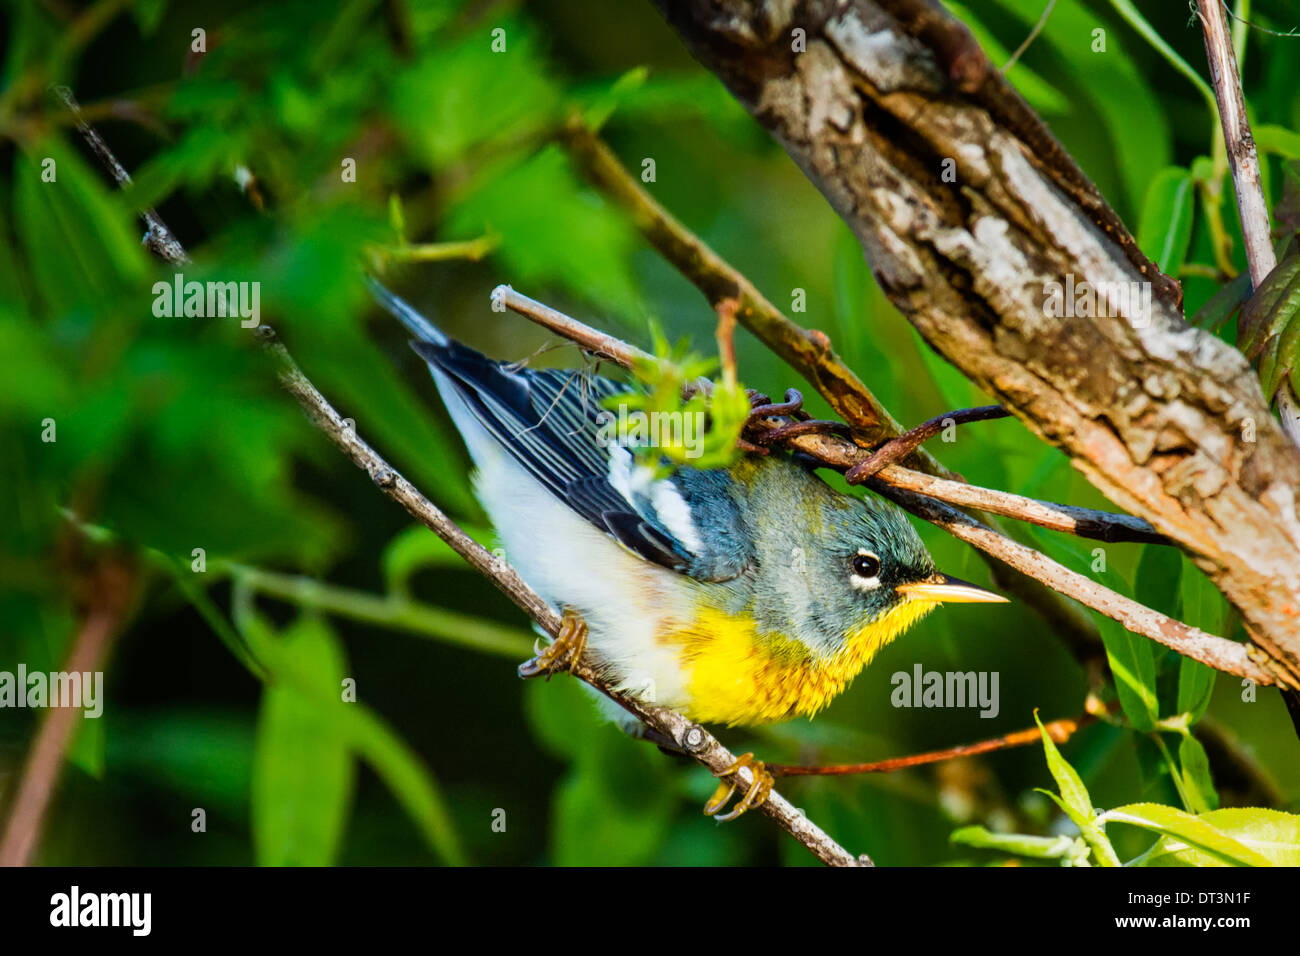 Northern Parula (Setophaga americana) perched in a tree. - Stock Image